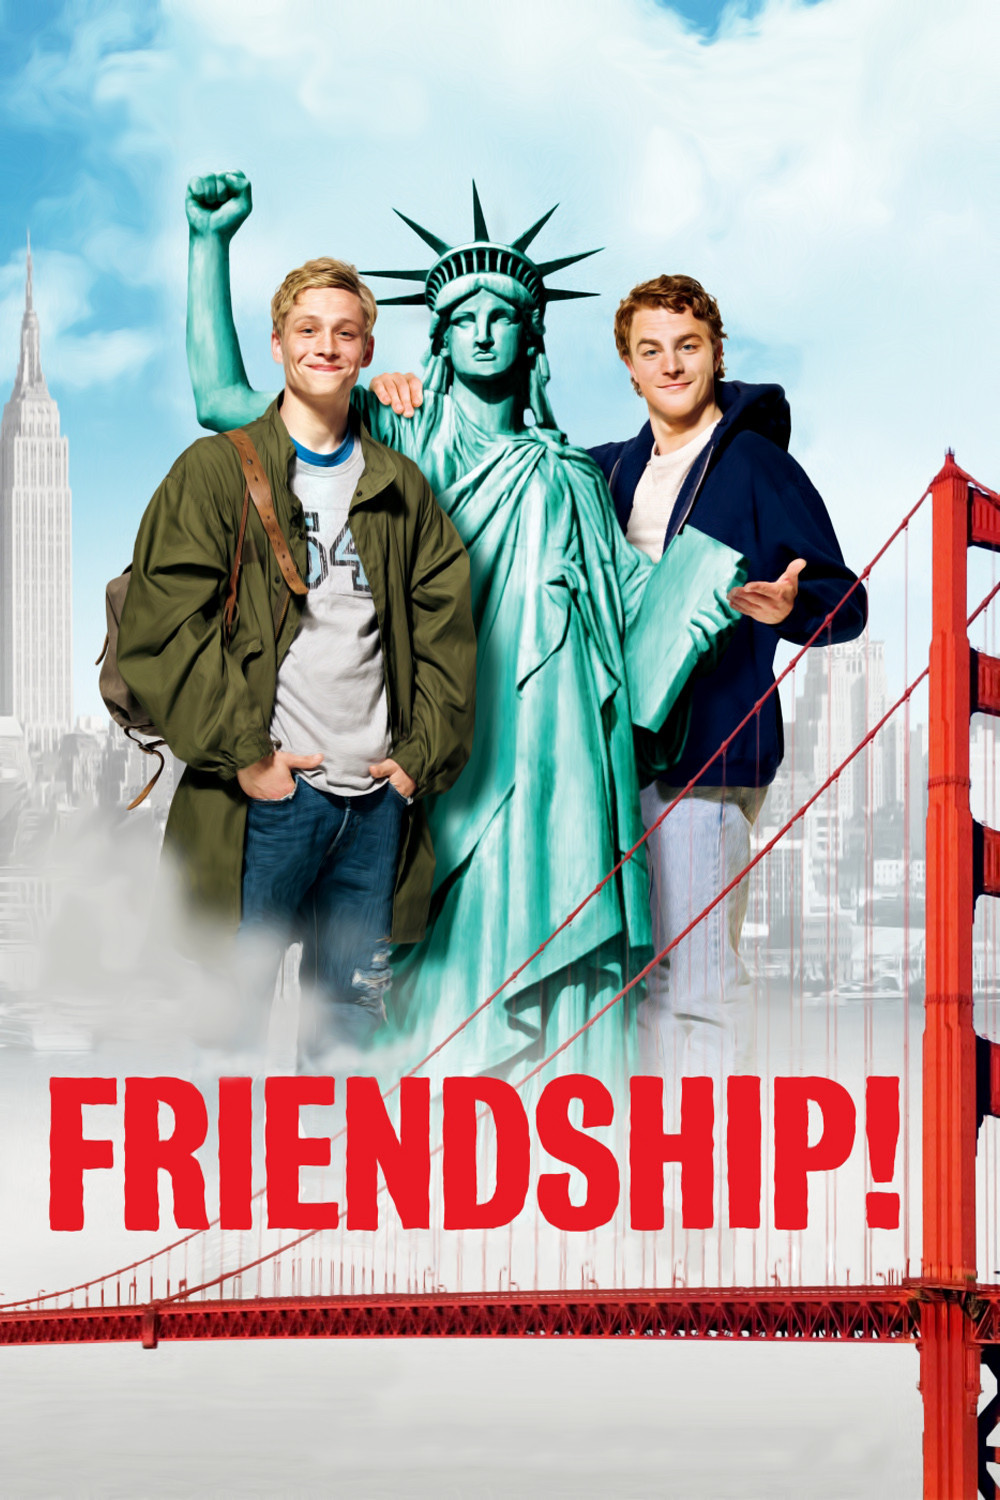 affiche du film Friendship!